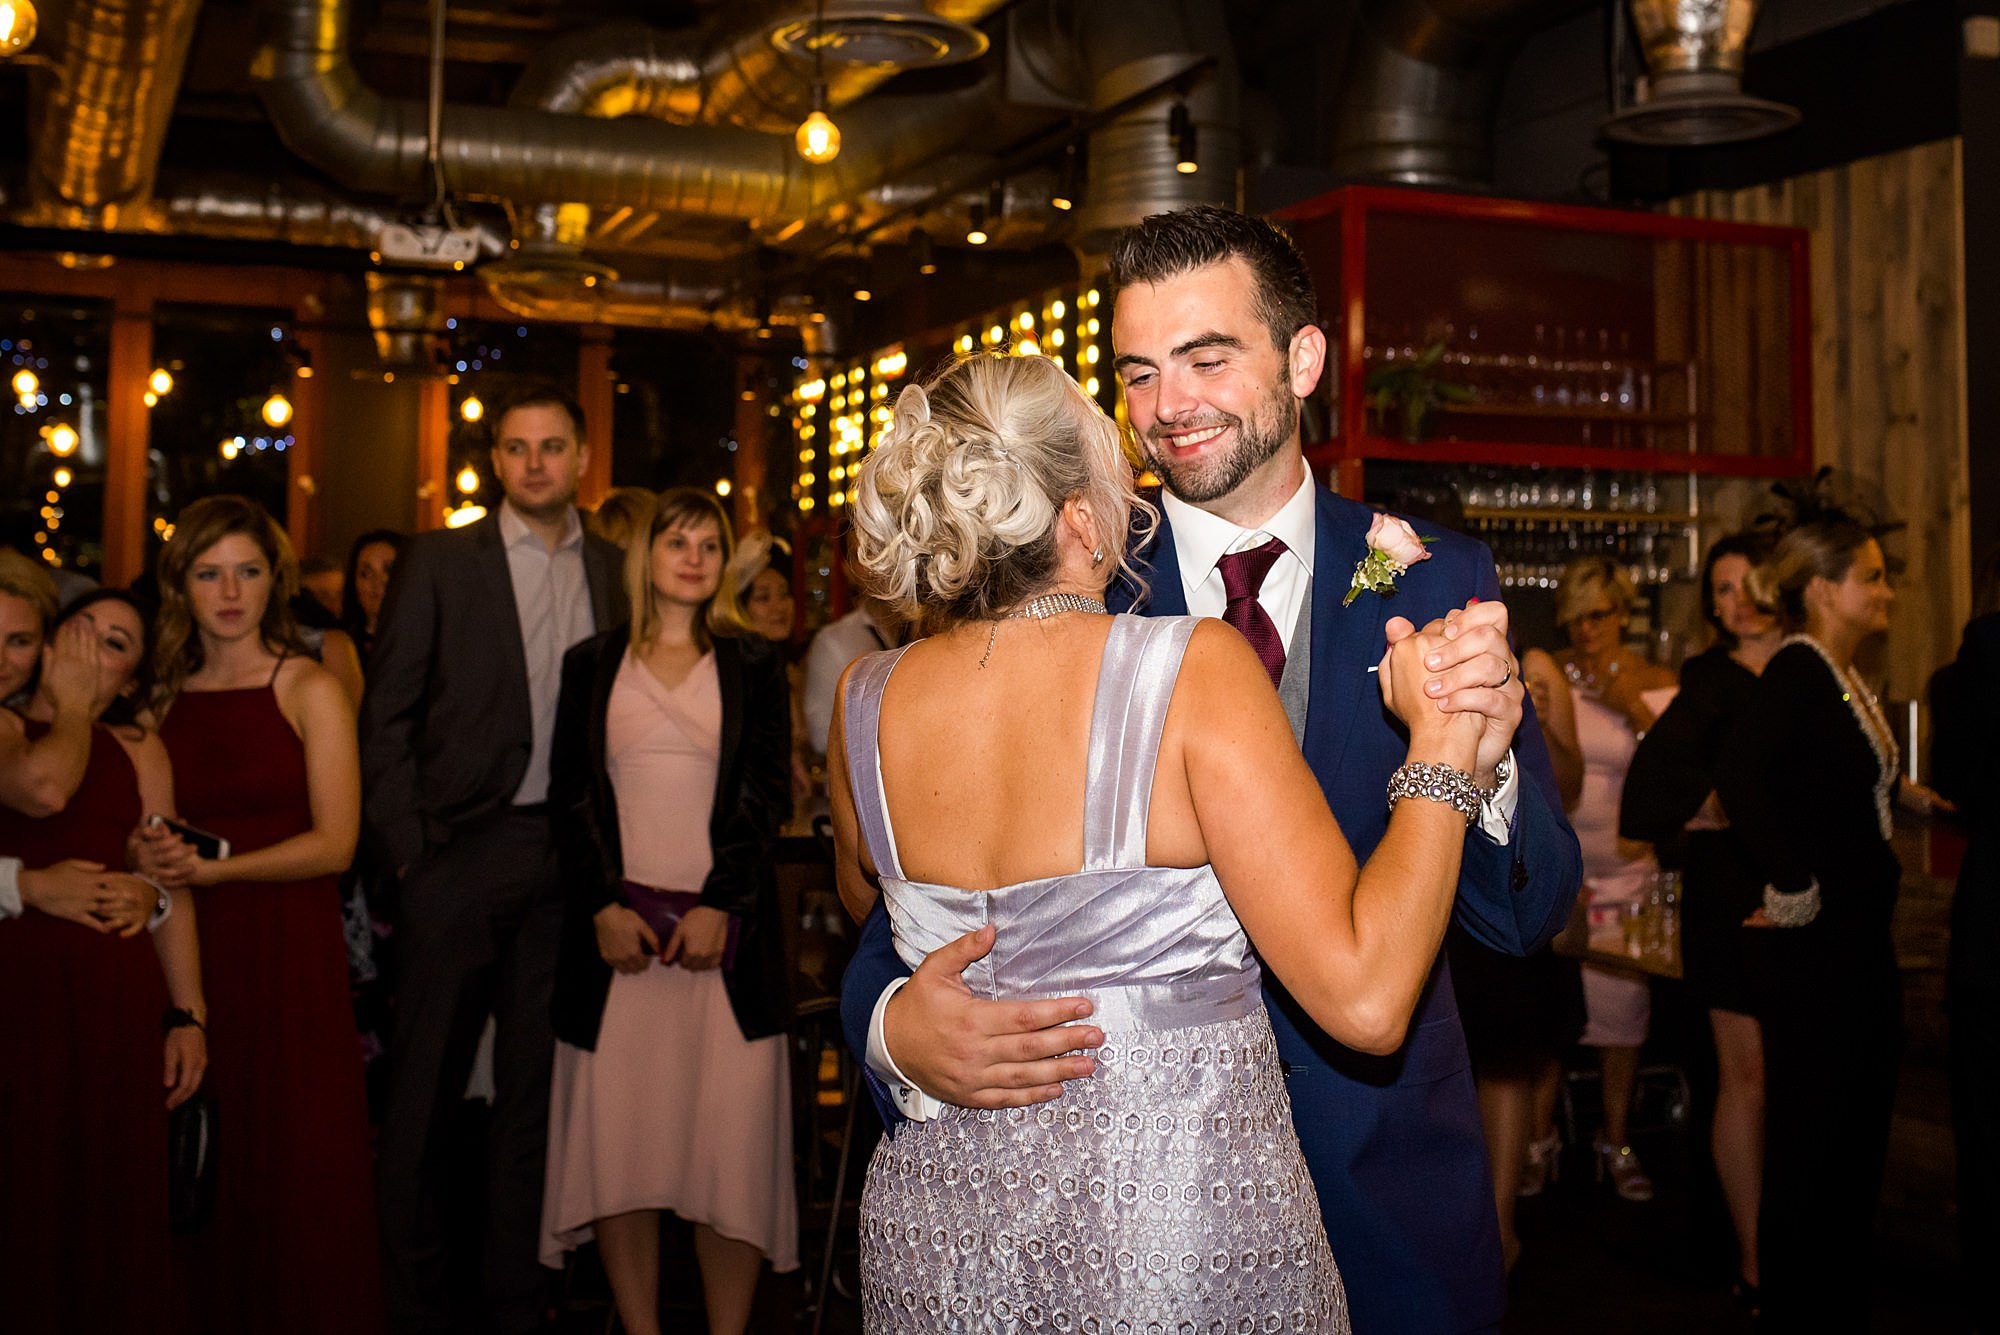 The Union Paddington wedding groom dances with his mother